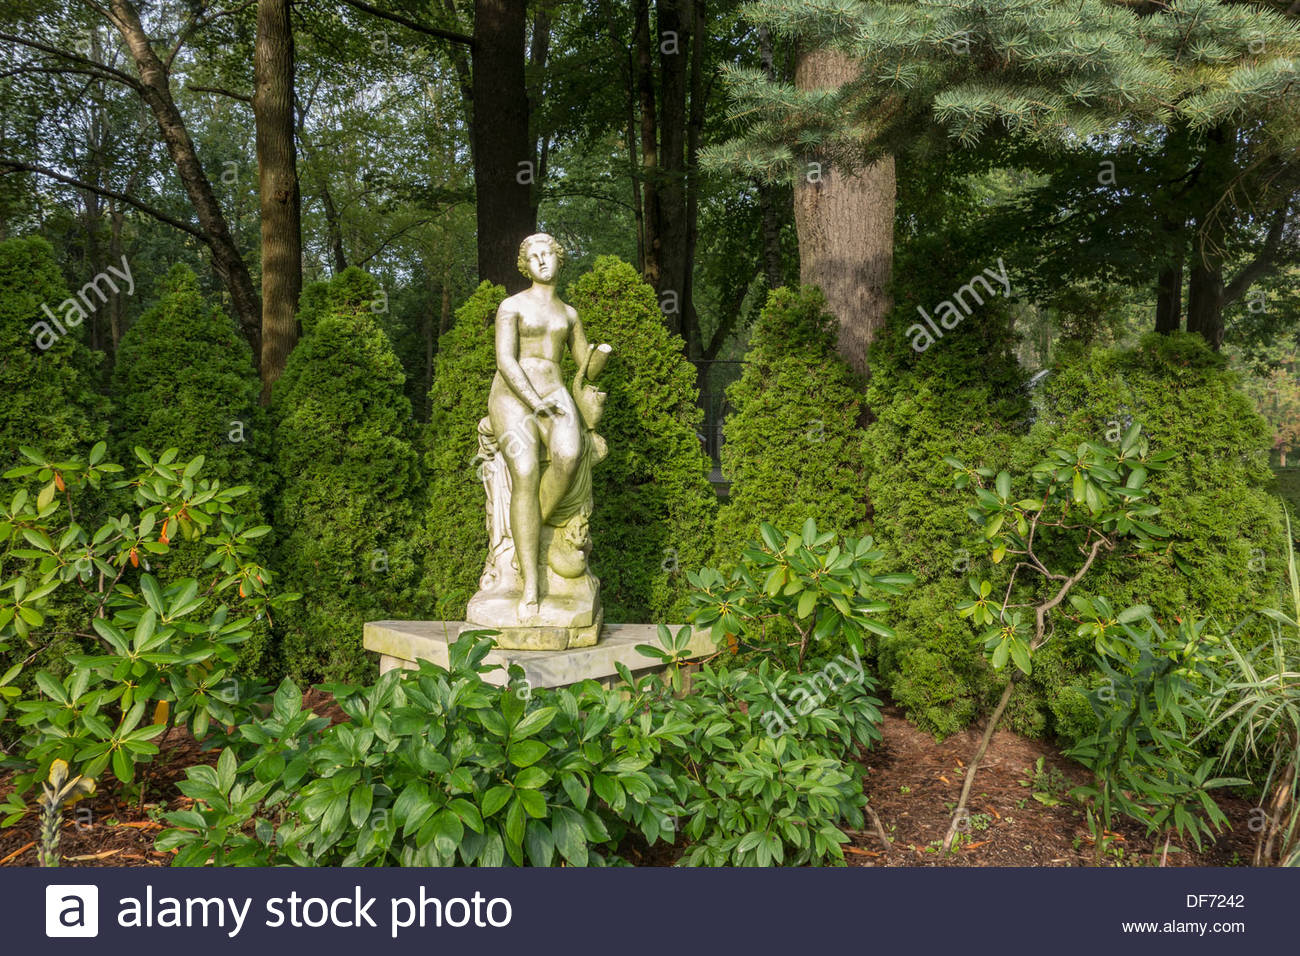 Musidora Sculpture In The Guild Inn Gardens At The Guild A Public Stock Photo Royalty Free